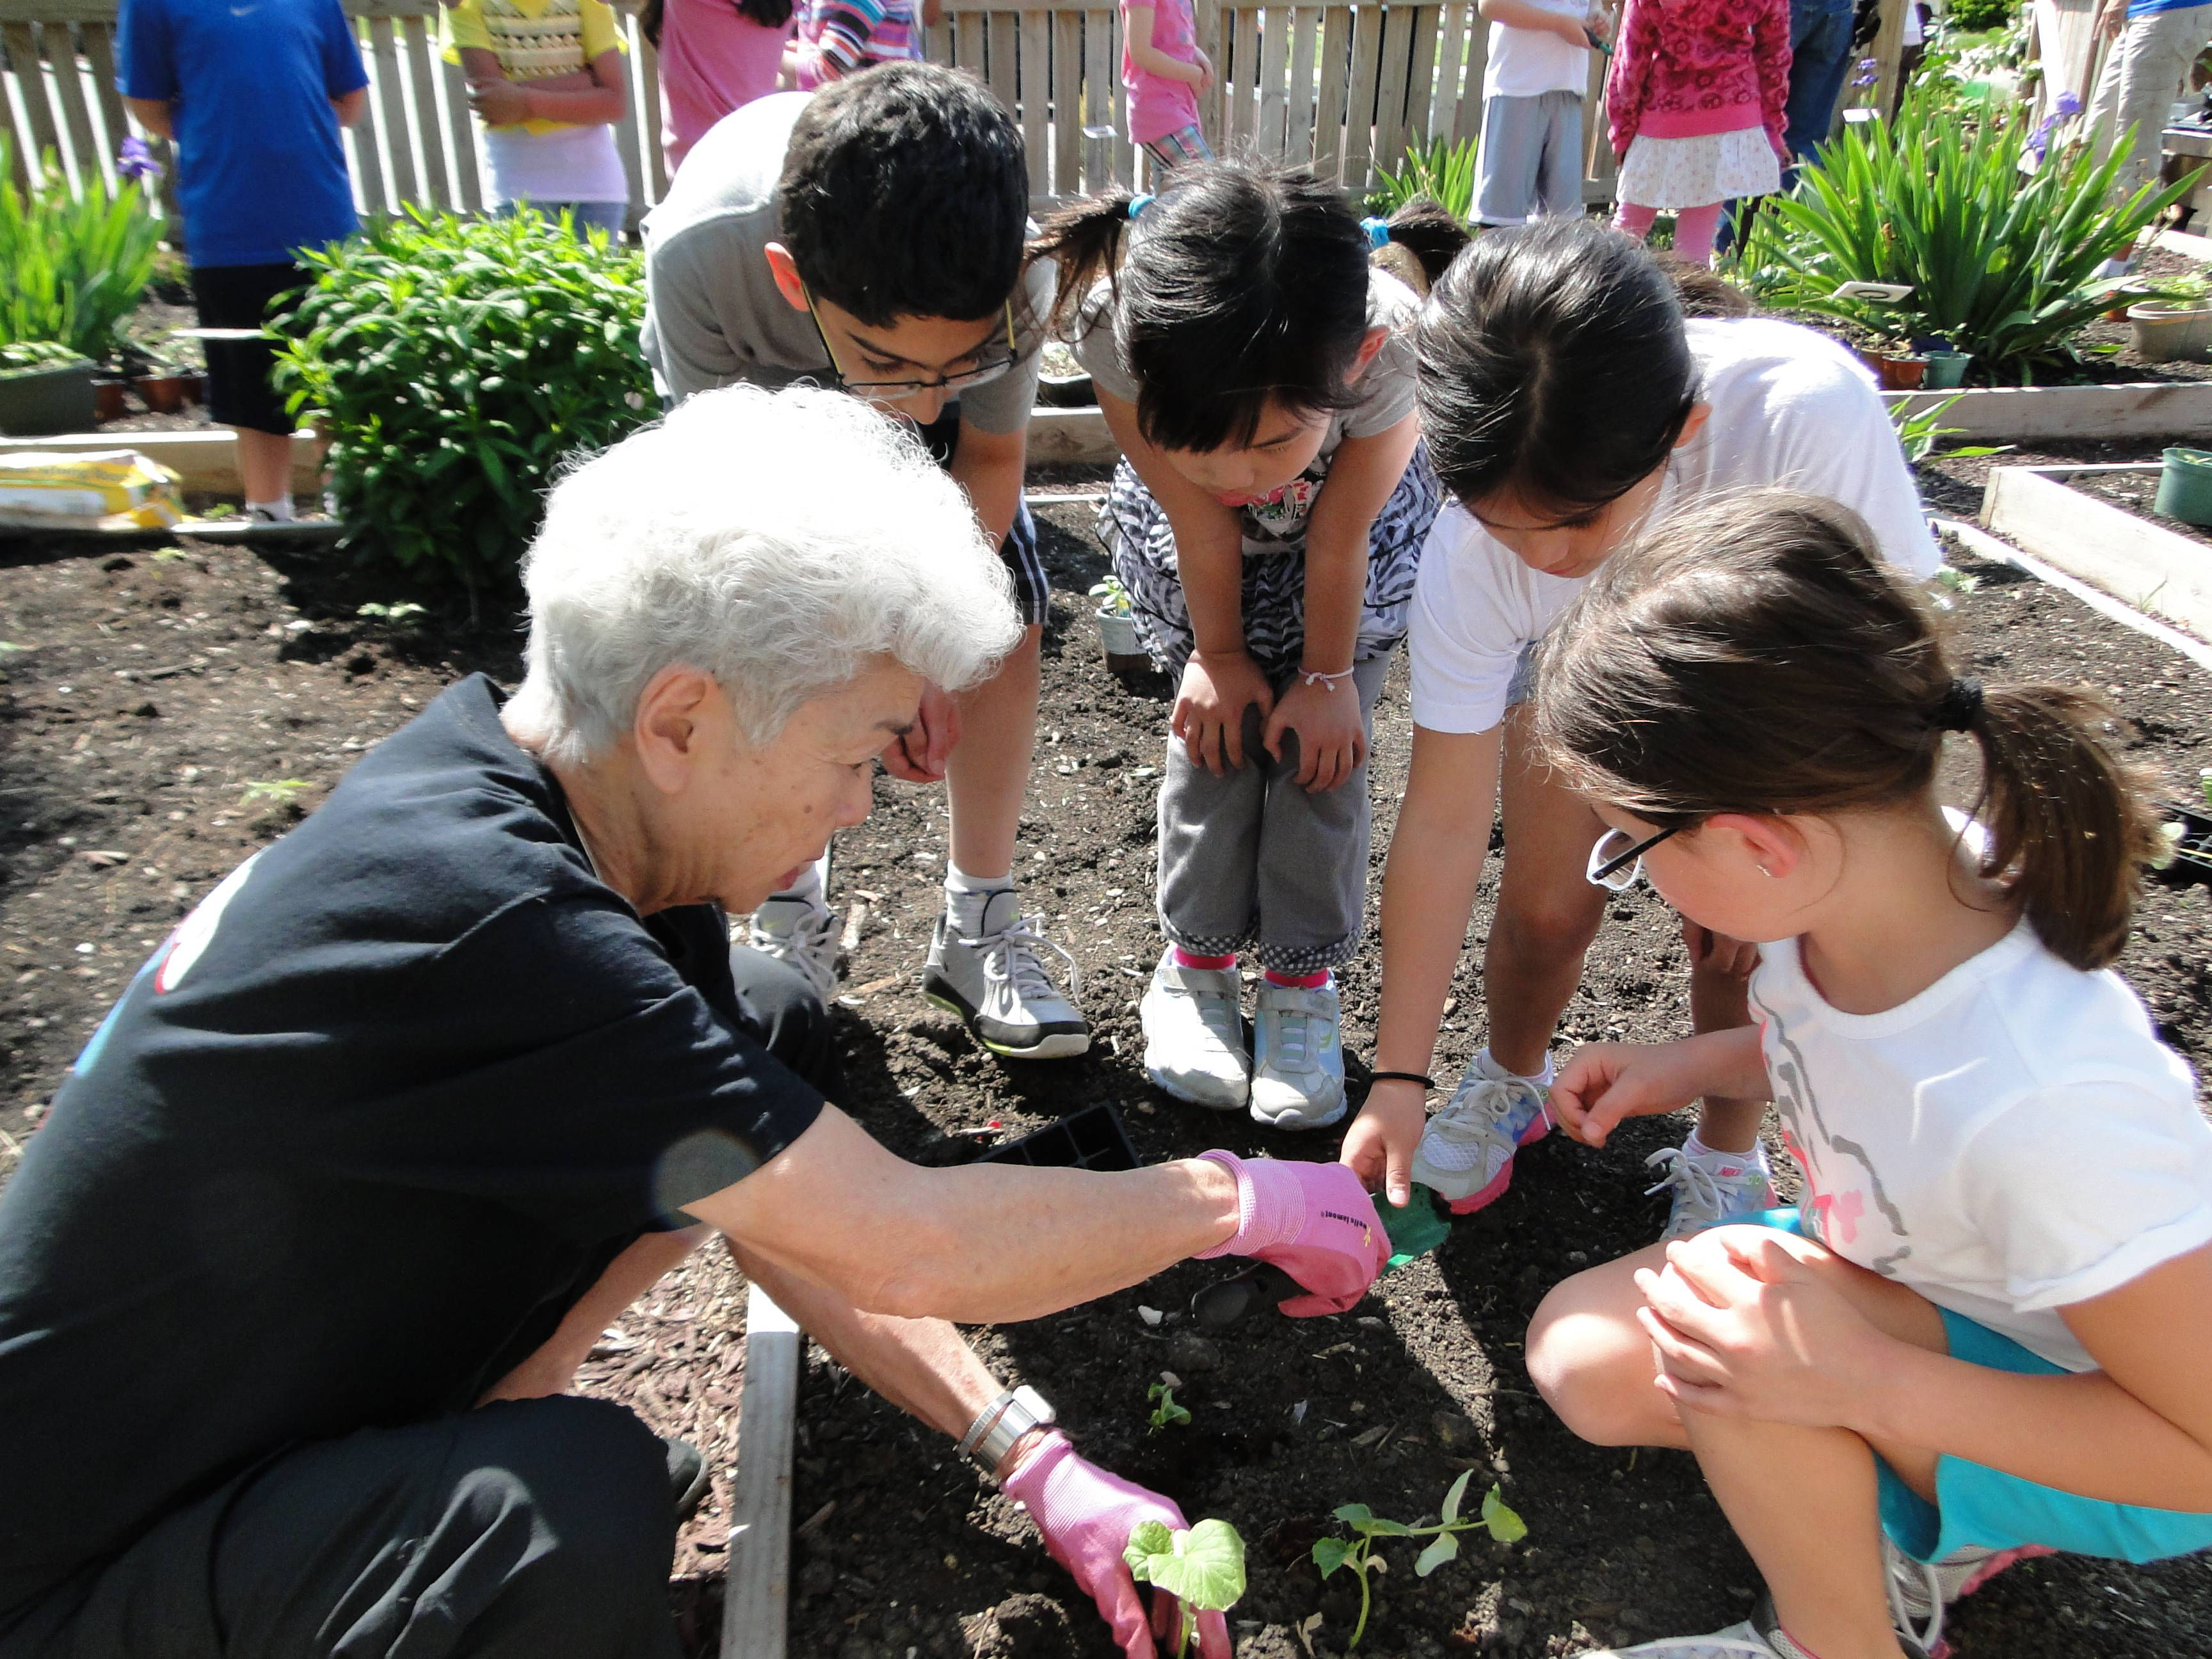 Volunteers from Friendship Village work on an intergenerational gardening program with students of Hoover School in Schaumburg.